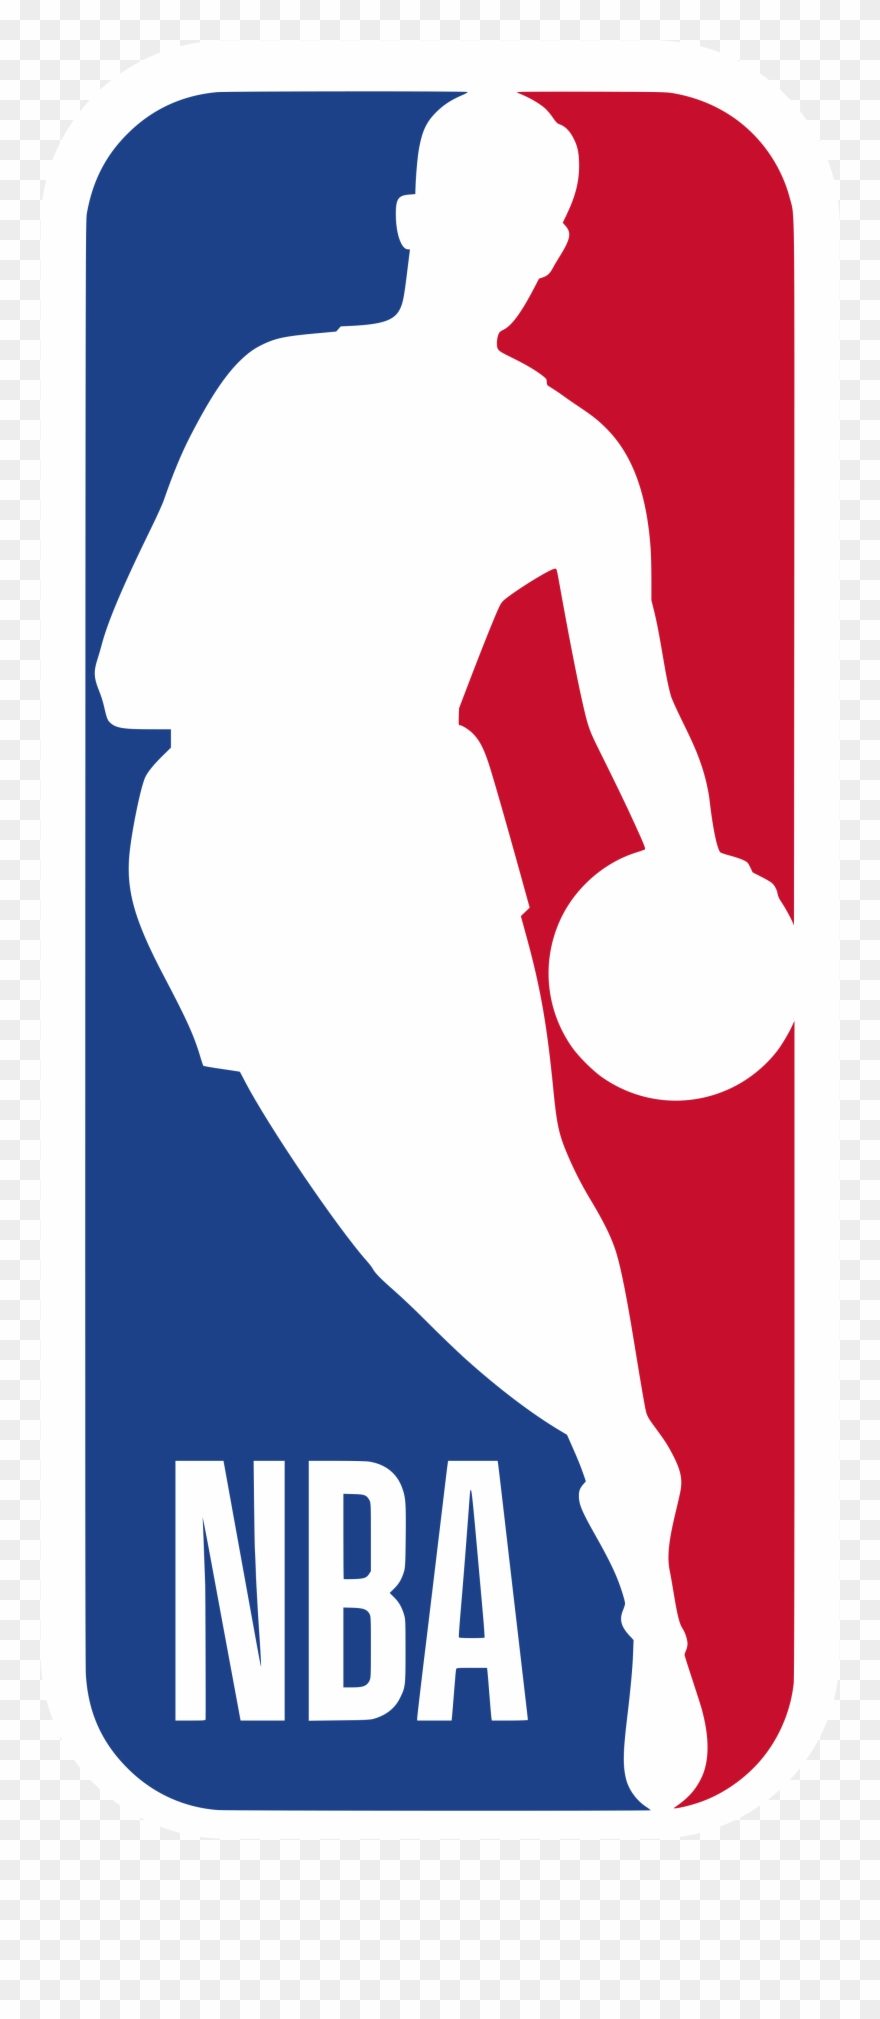 Lakers logo clipart picture royalty free Spurs Drawing Logo Nba - Logos And Uniforms Of The Los Angeles ... picture royalty free